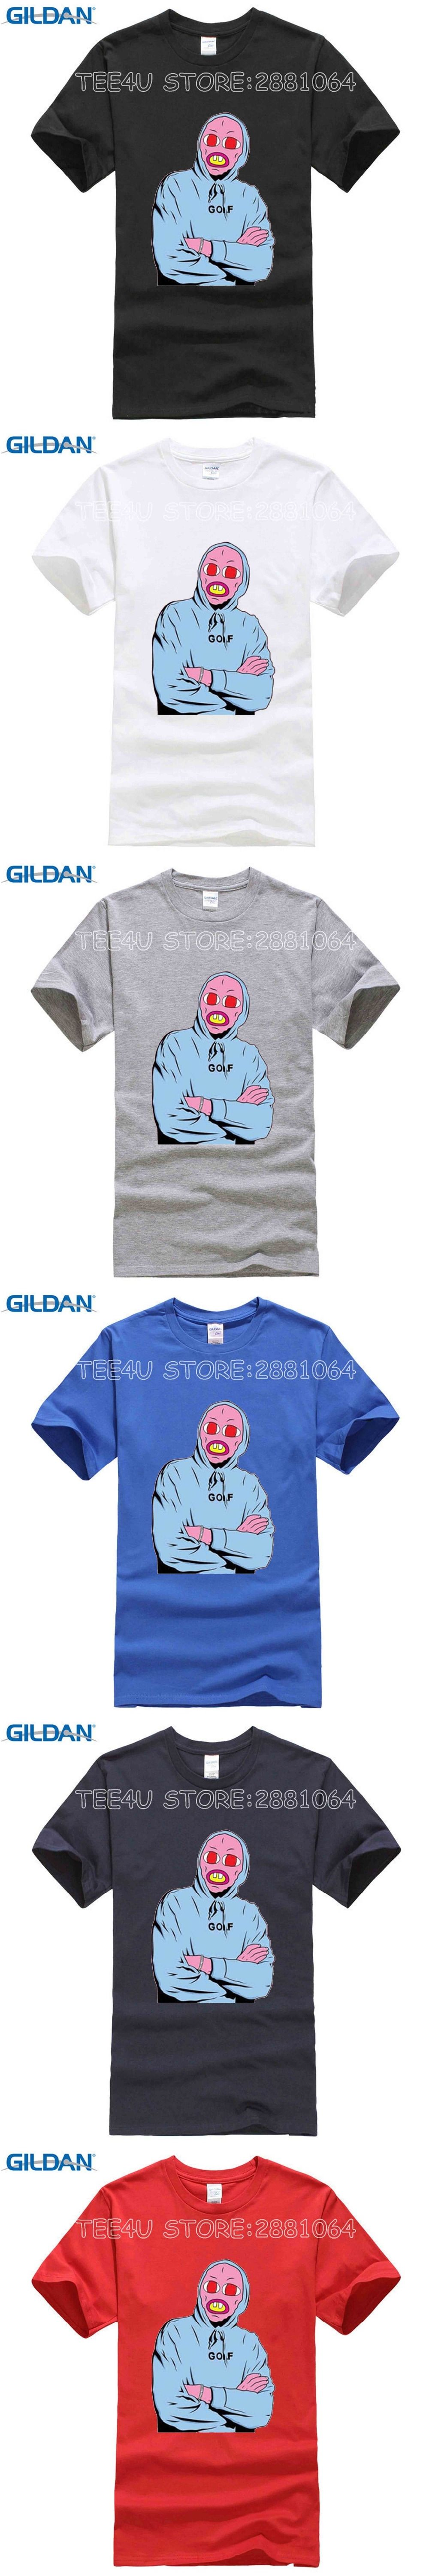 8ce1b041230f Man Fashion Round Collar T Shirt 2017 Jacob Pantoja Tyler The Creator  OFWGKTA T Shirt Music